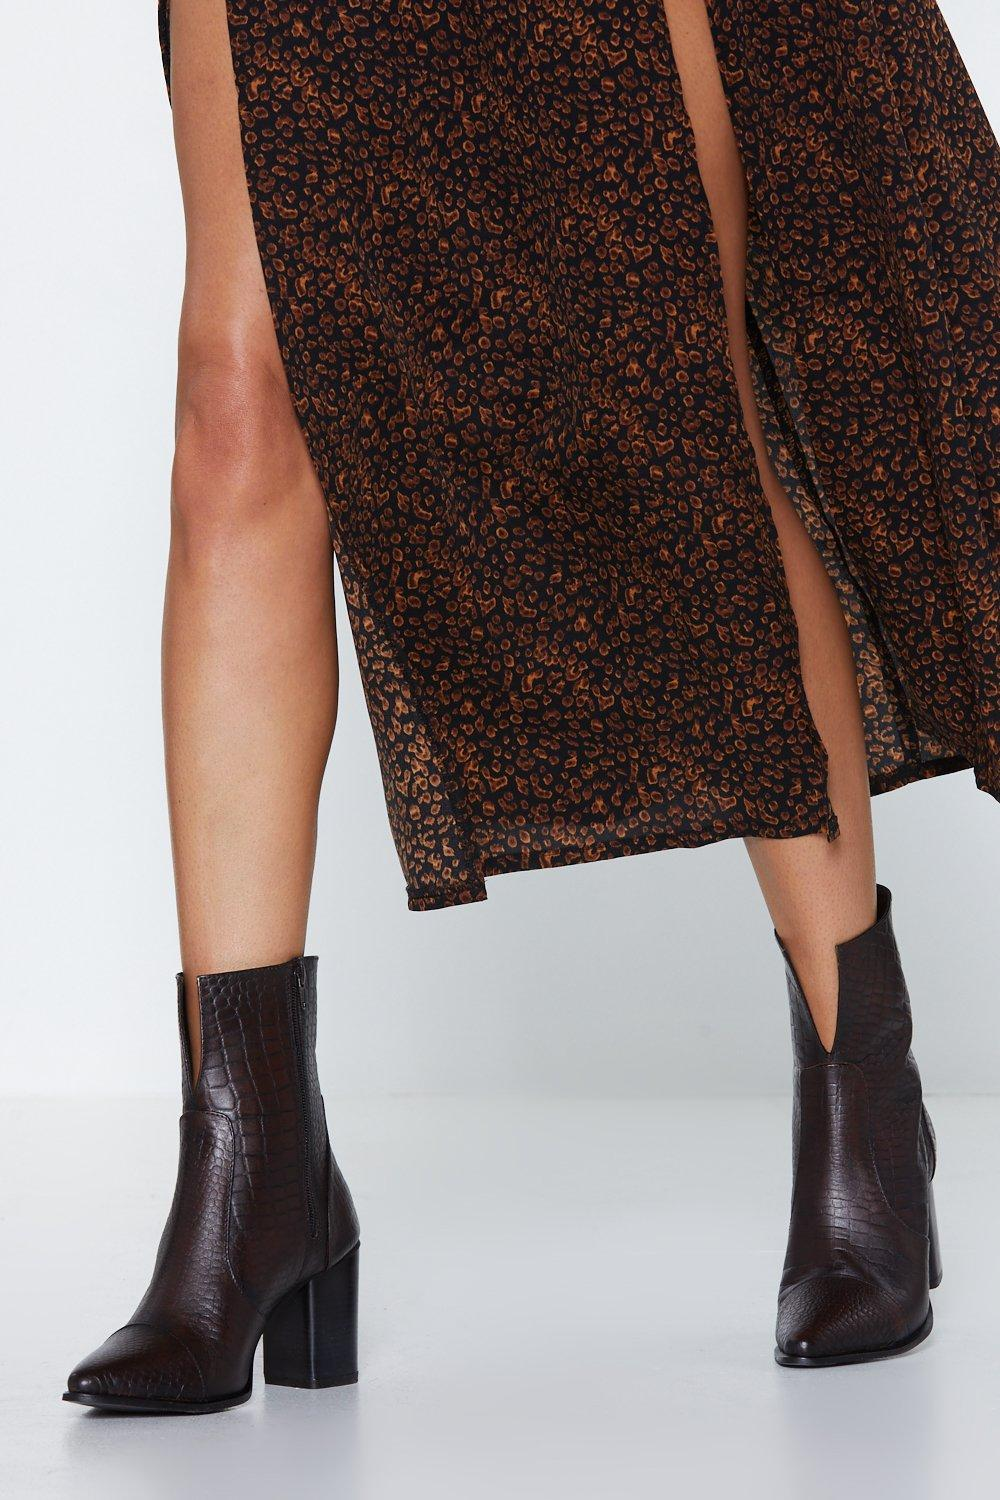 Crocodile Rock Leather Boot by Nasty Gal